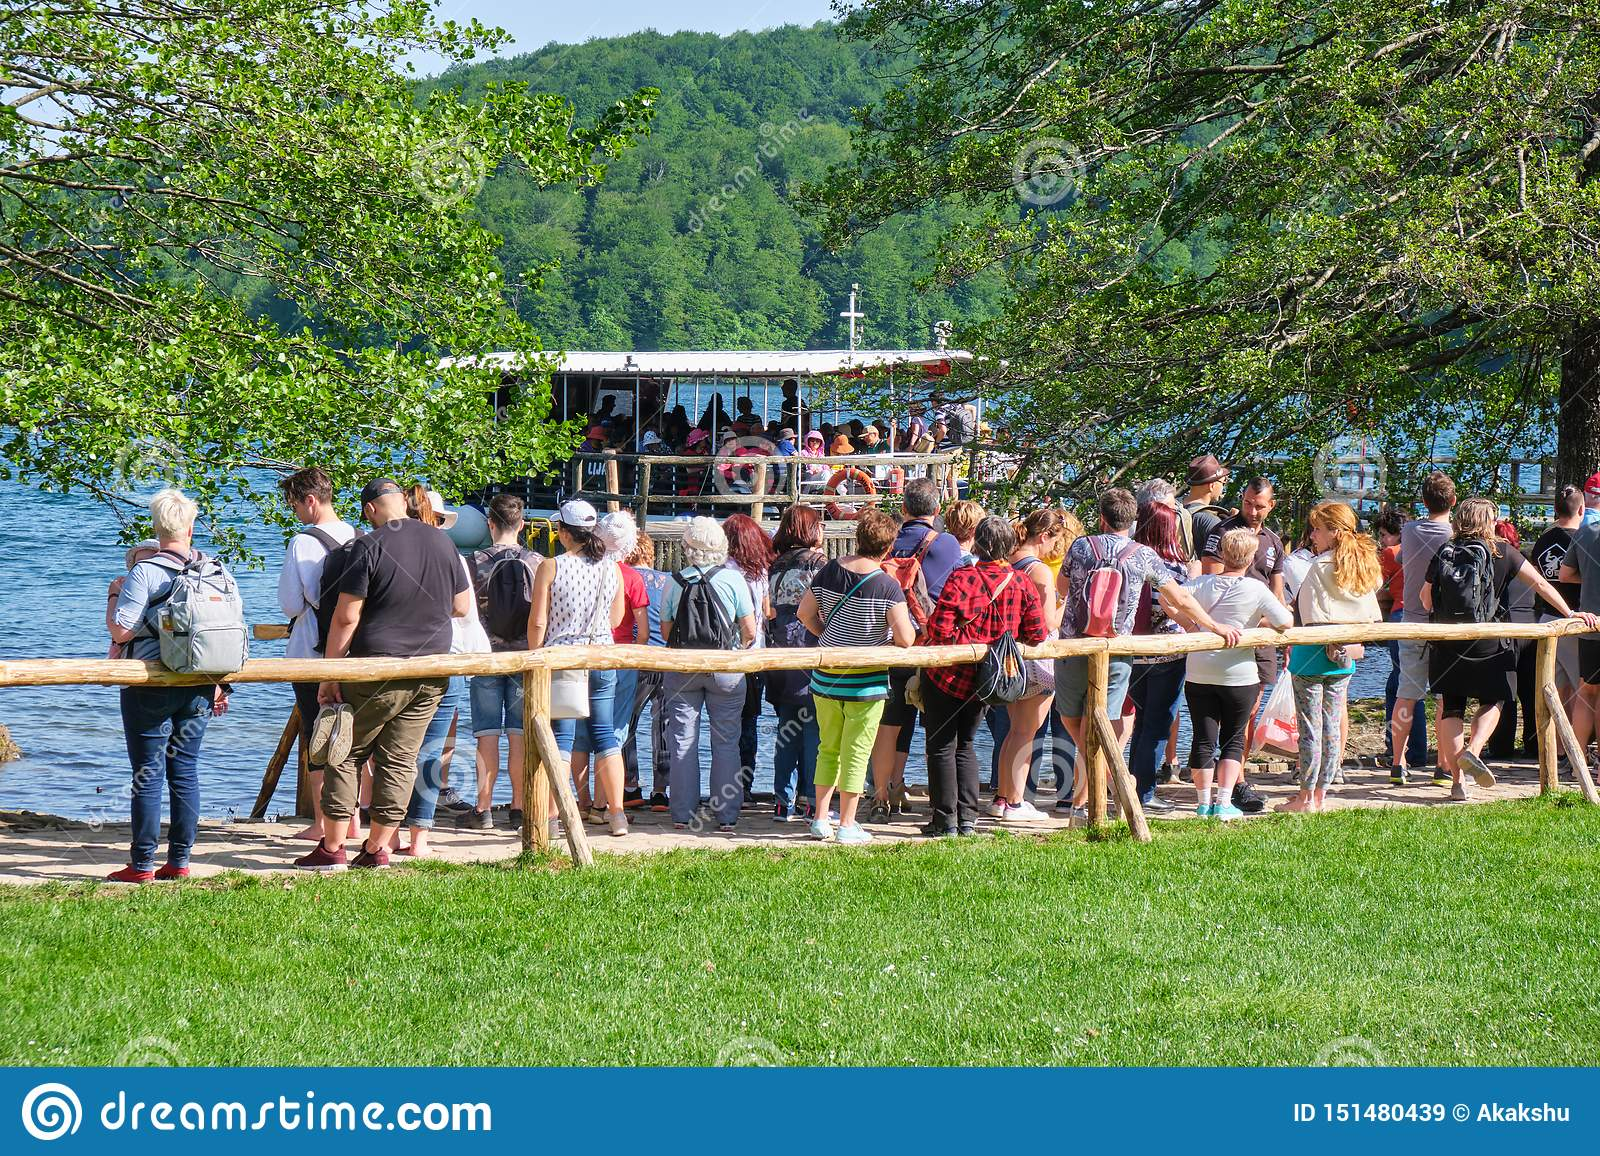 Long queue of people waiting for the electric boat to cross Kozjak Lake Jezero Kozjak. Popular touristic destination in Croatia.